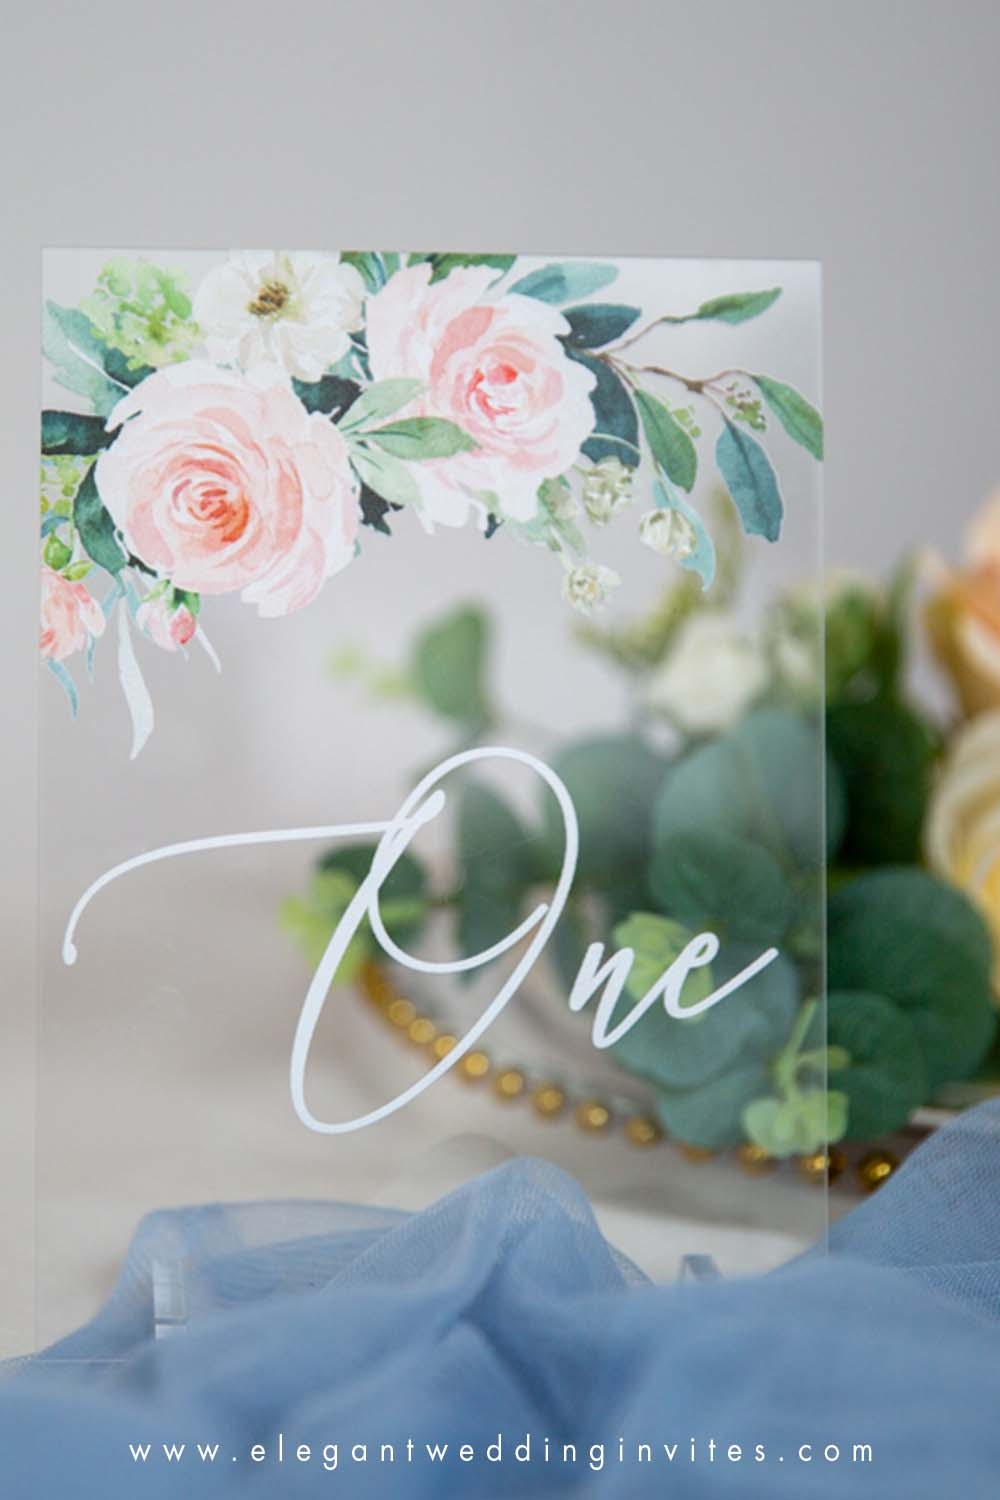 acrylic table numbers elegant ivory and white flowers greenery